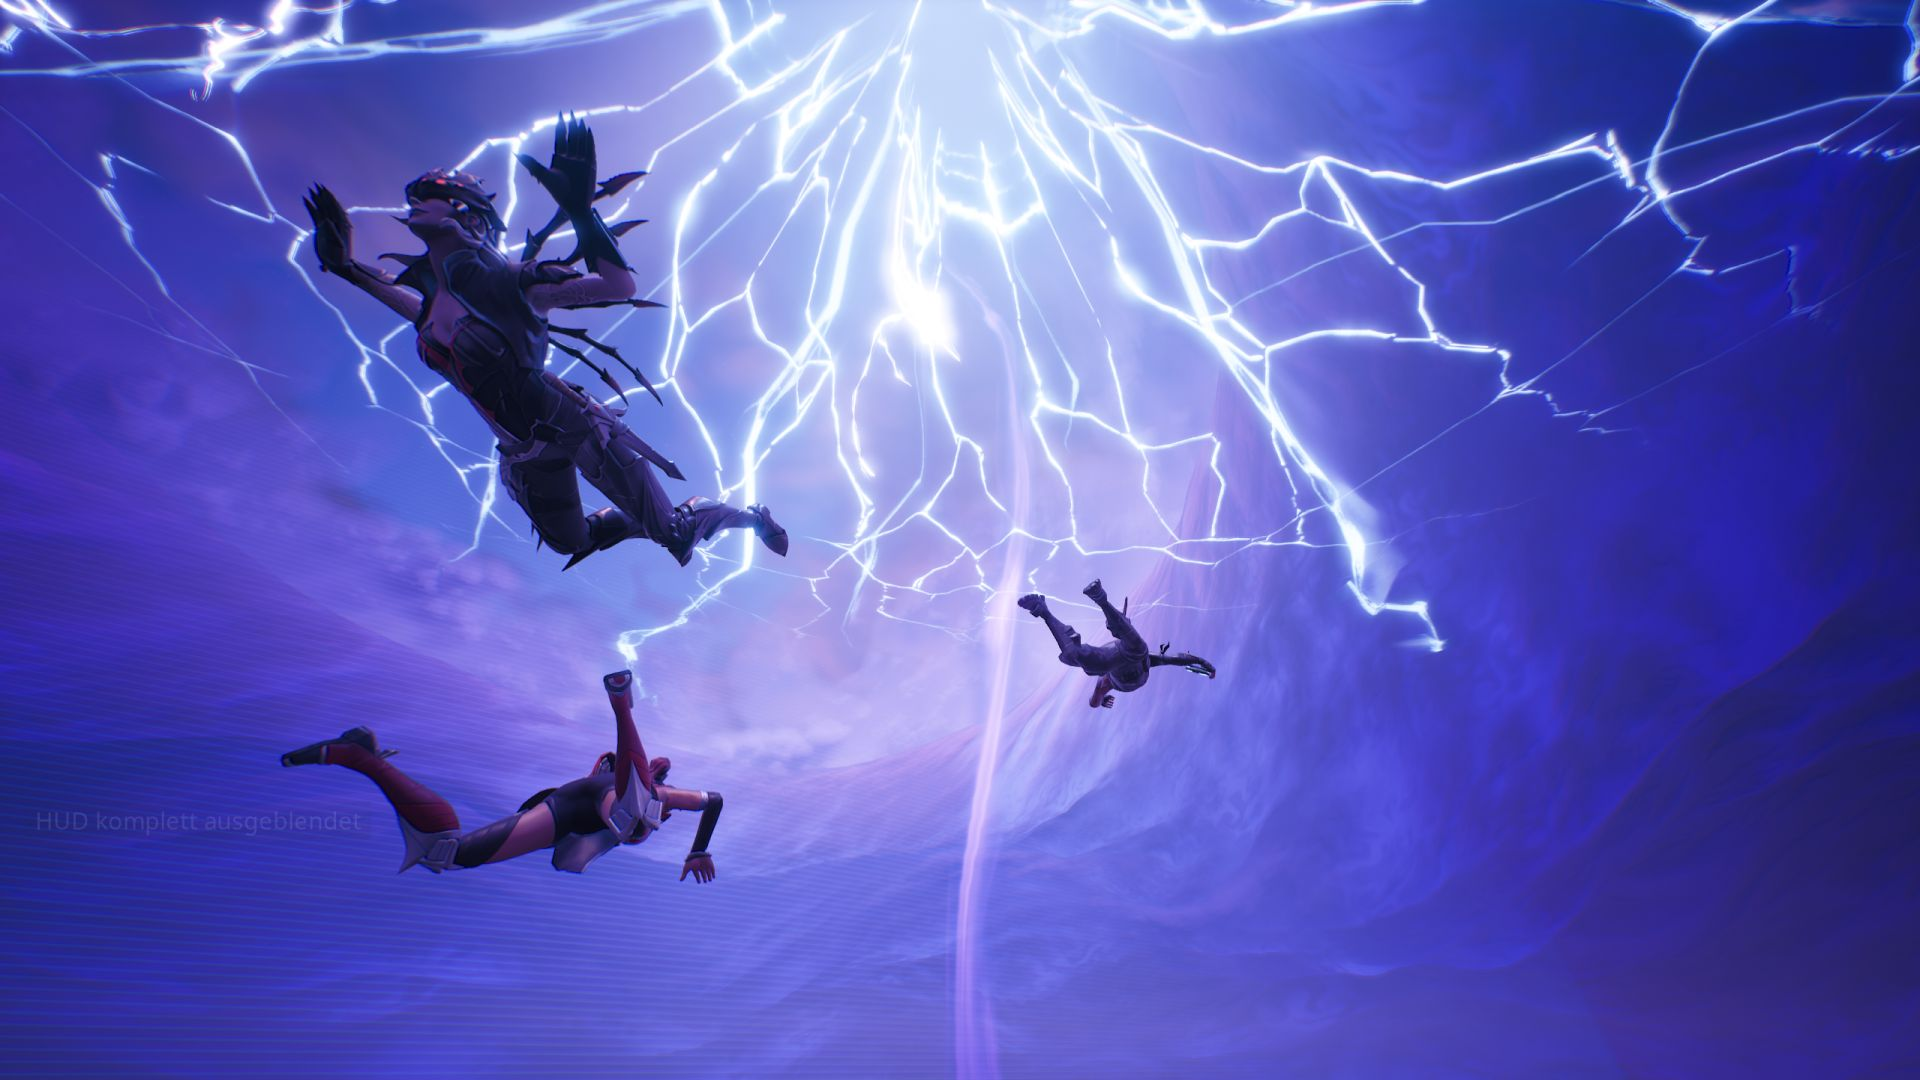 Fortnite Screenshot 2018.10.25 – 12.22.34.21